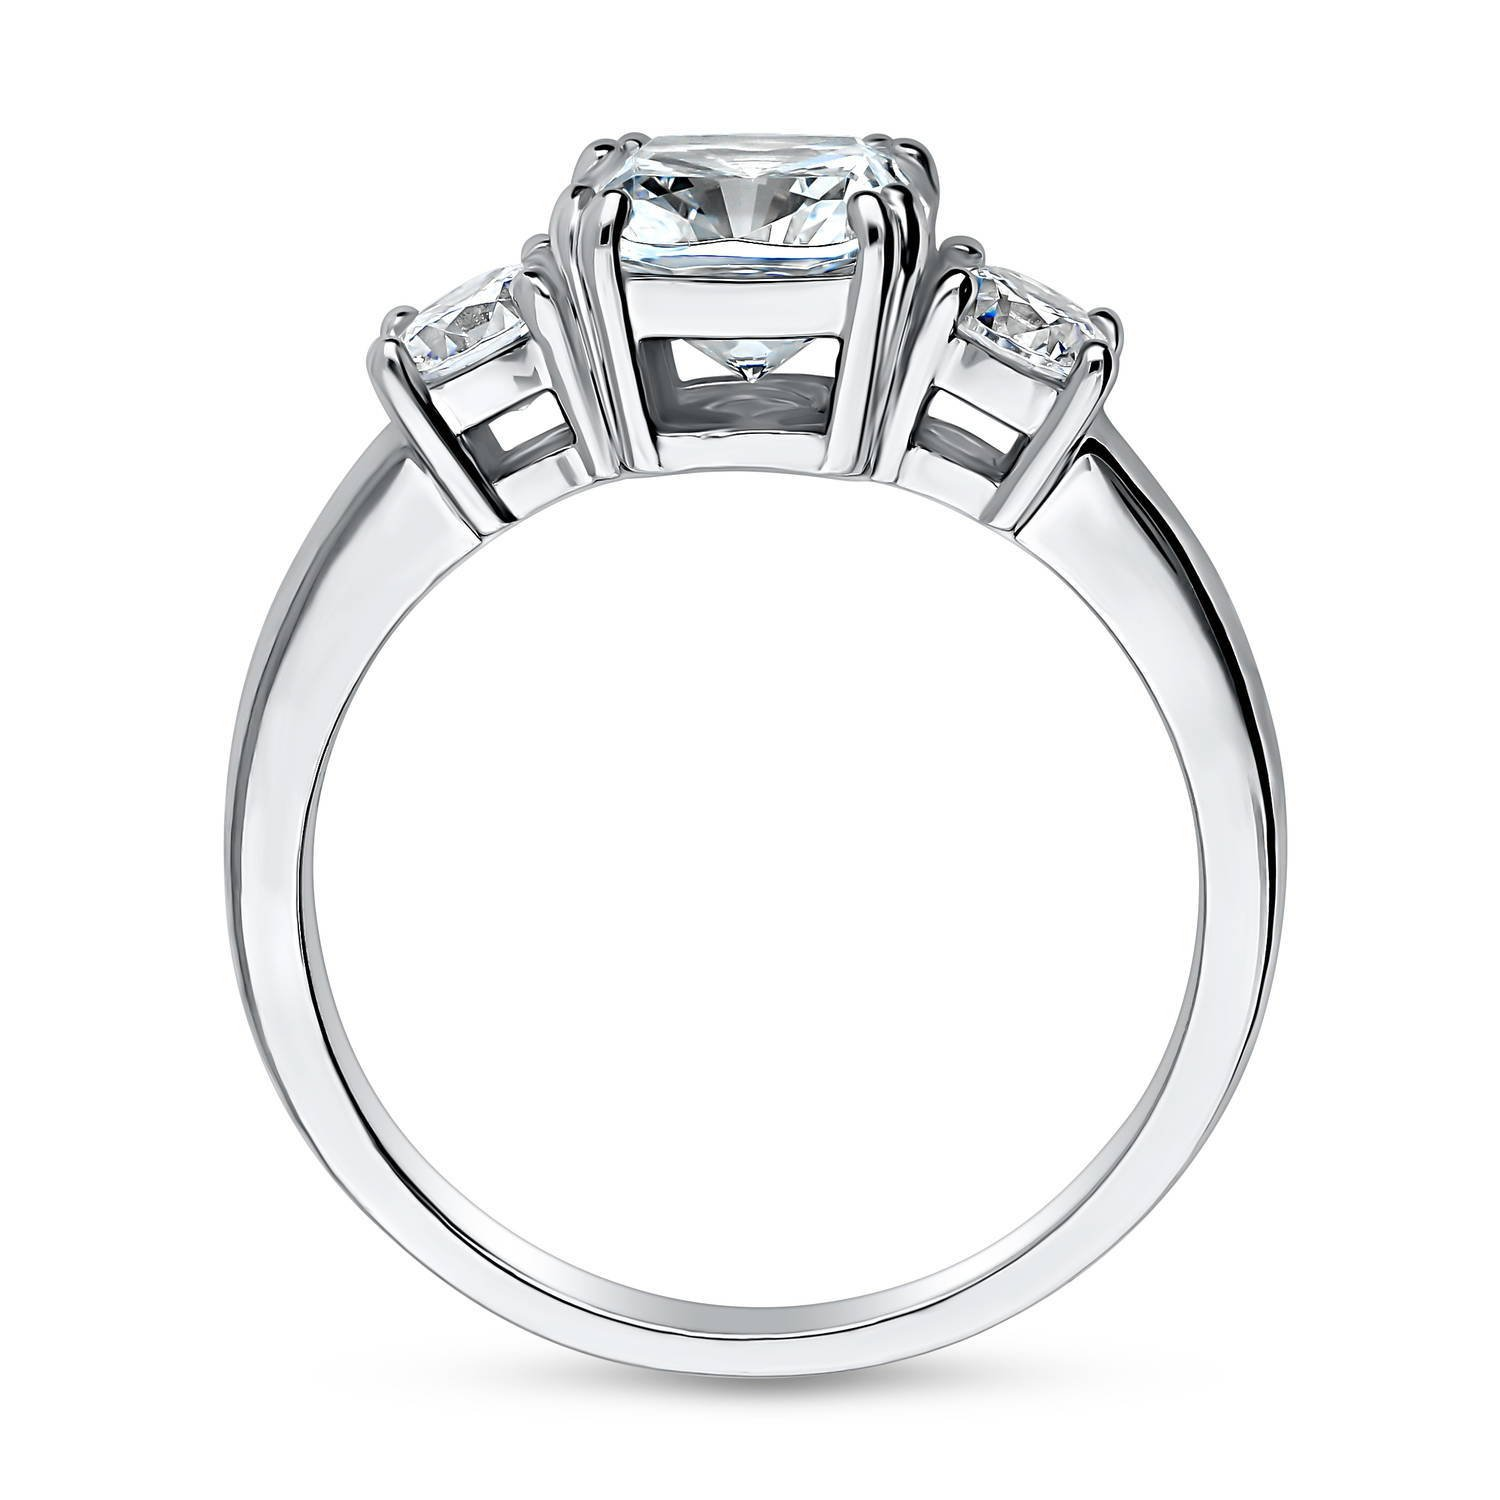 BERRICLE Rhodium Plated Silver Cushion Cut Cubic Zirconia CZ 3-Stone Promise Engagement Ring Size 8.5 by BERRICLE (Image #4)